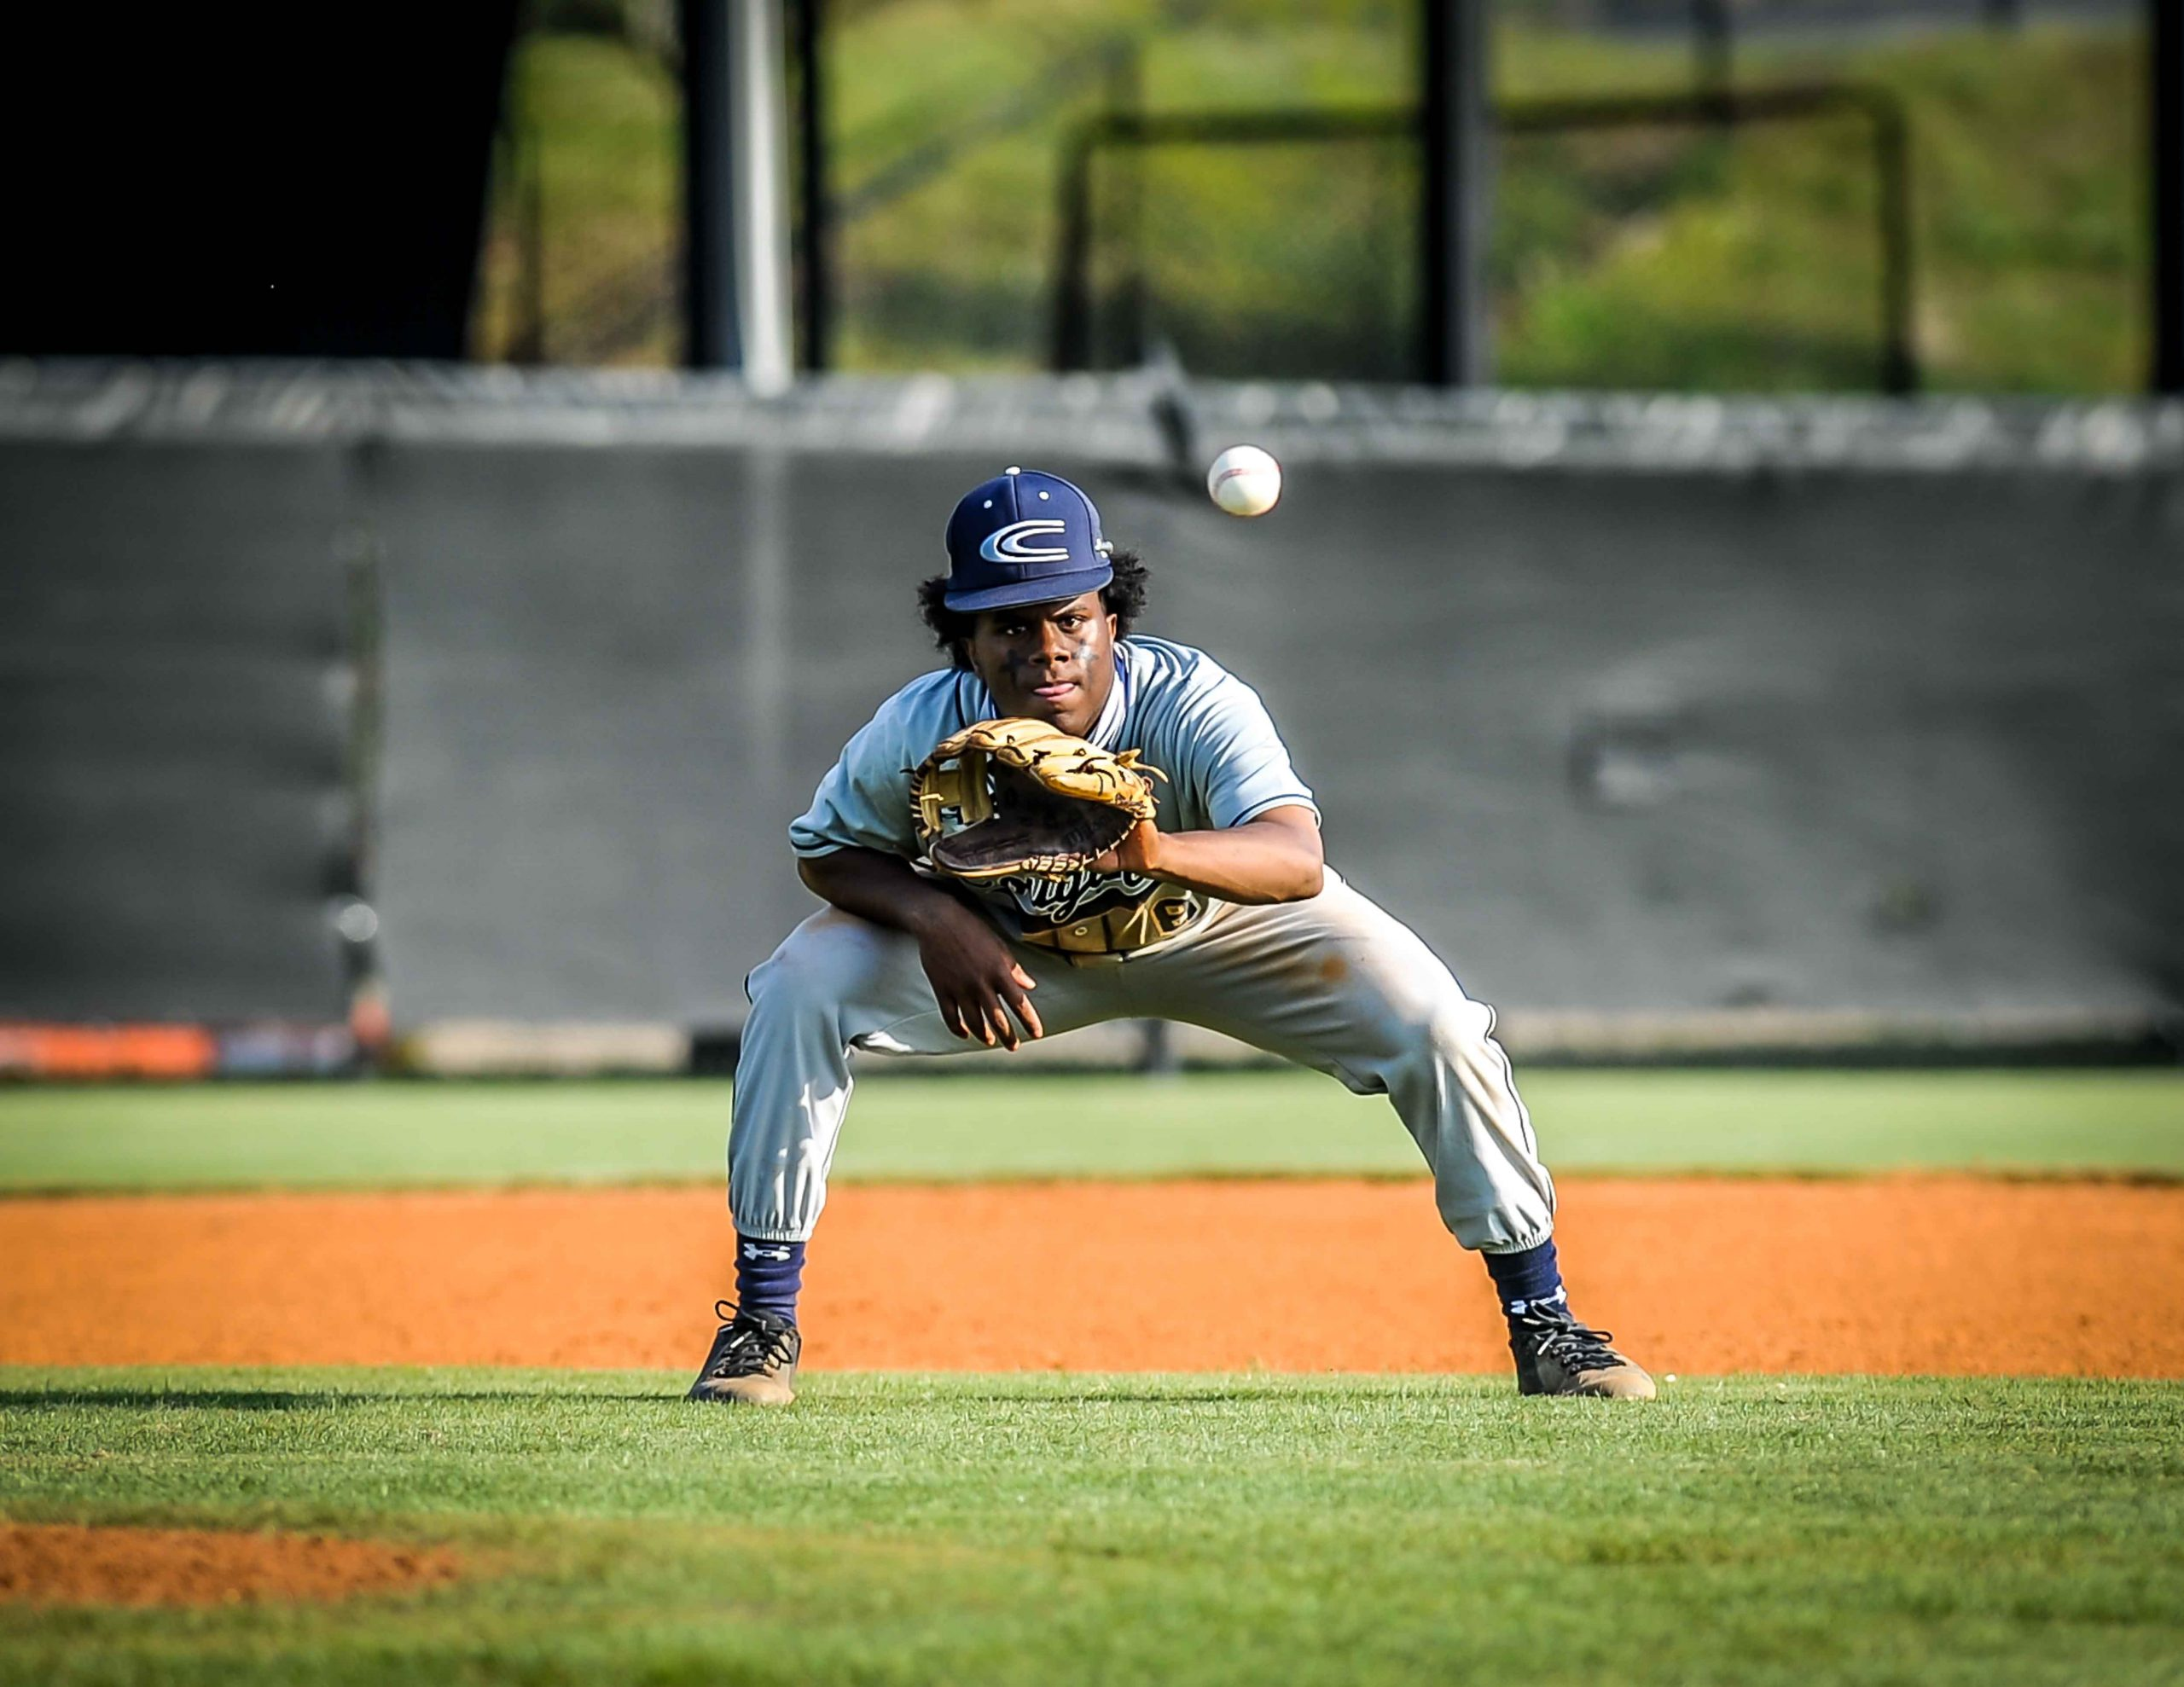 Cougars swept in area doubleheader